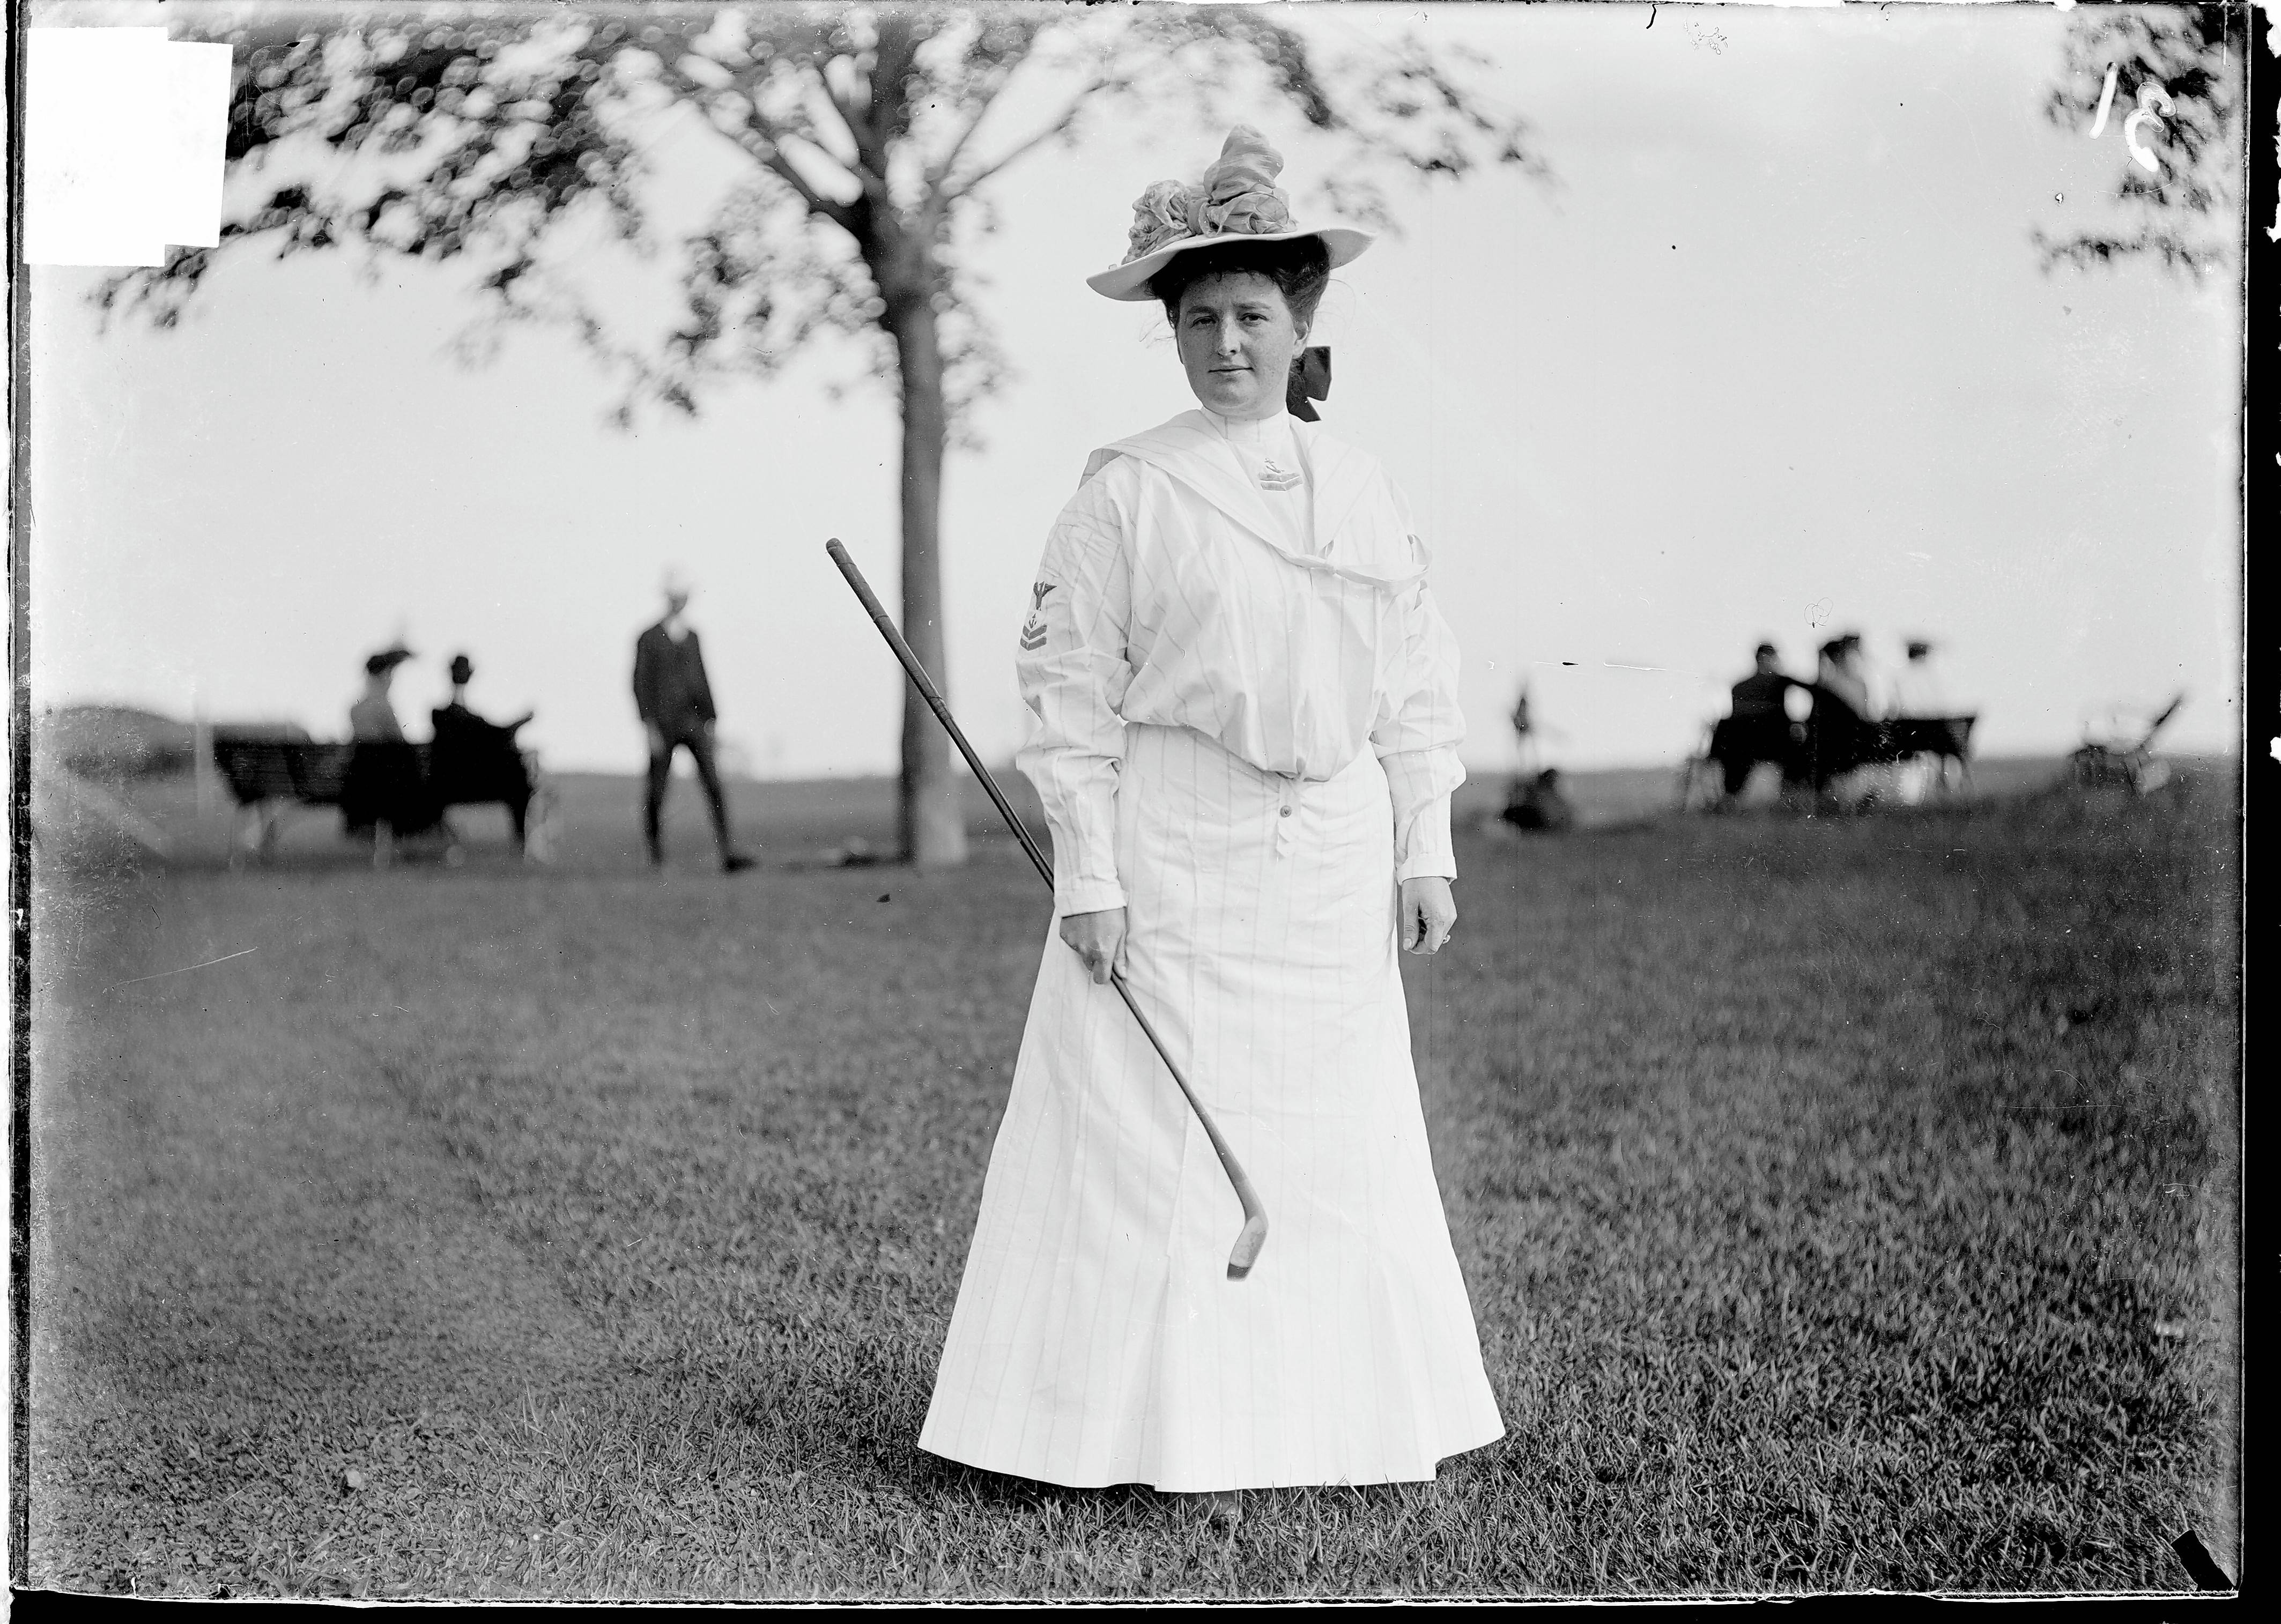 A portrait of Elizabeth Robertson taken at Chicago Golf Club in 1903 shows the style of dress required of women players in the era.